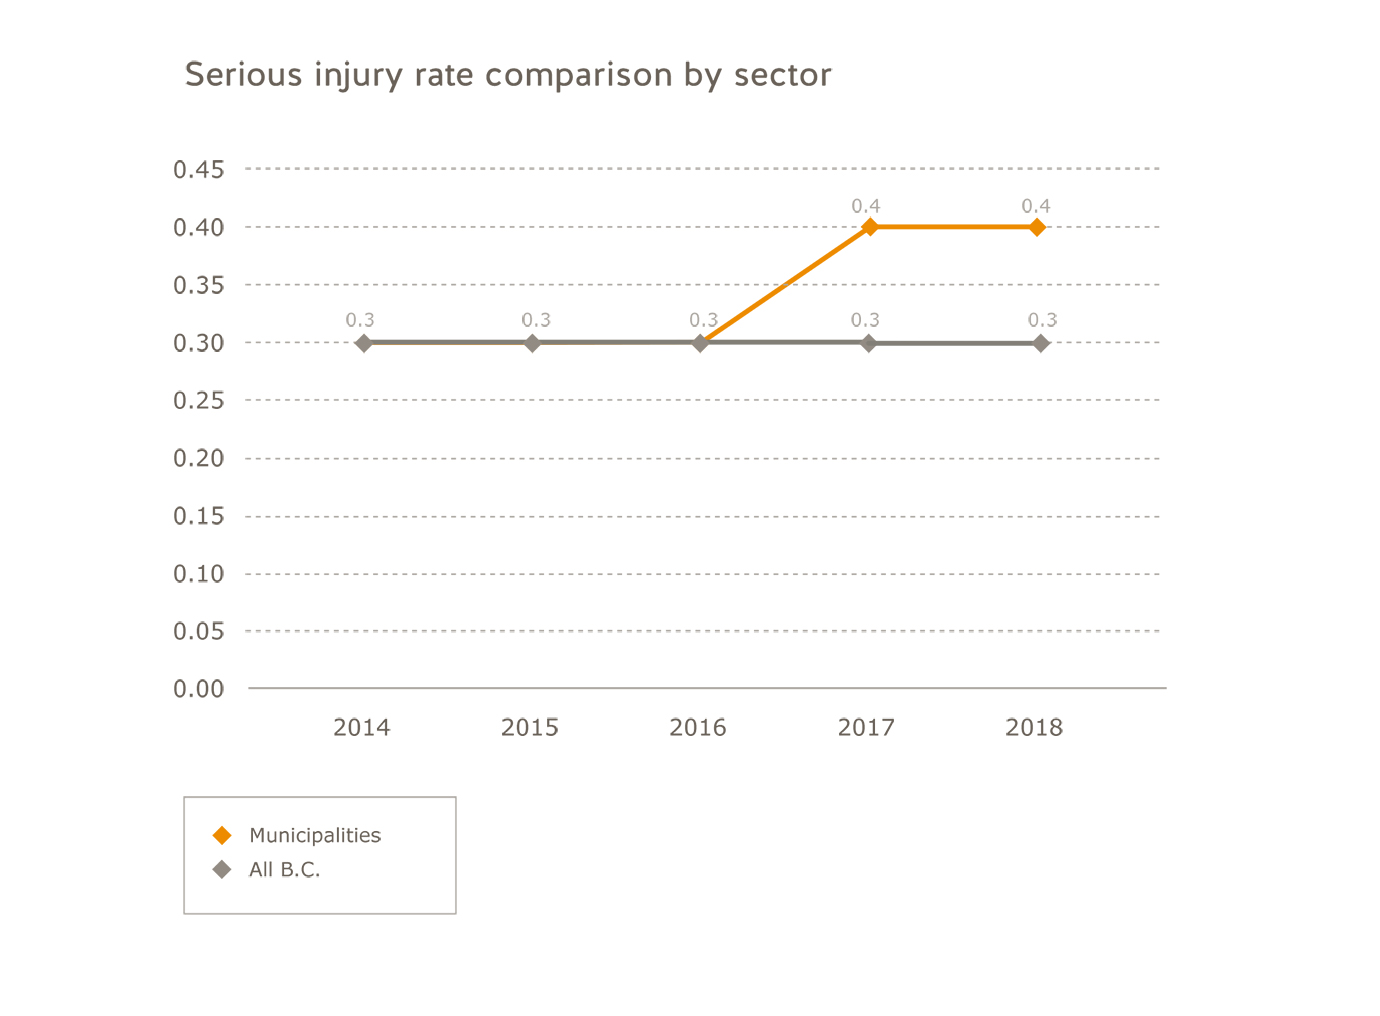 Municipalities serious injury rate comparison by sector for 2014 to 2018. All B.C.: 2014=0.3; 2015=0.3; 2016=0.3; 2017=0.3; 2018=0.3.  Municipalities=2016=0.3; 2017=0.4; 2018=0.4